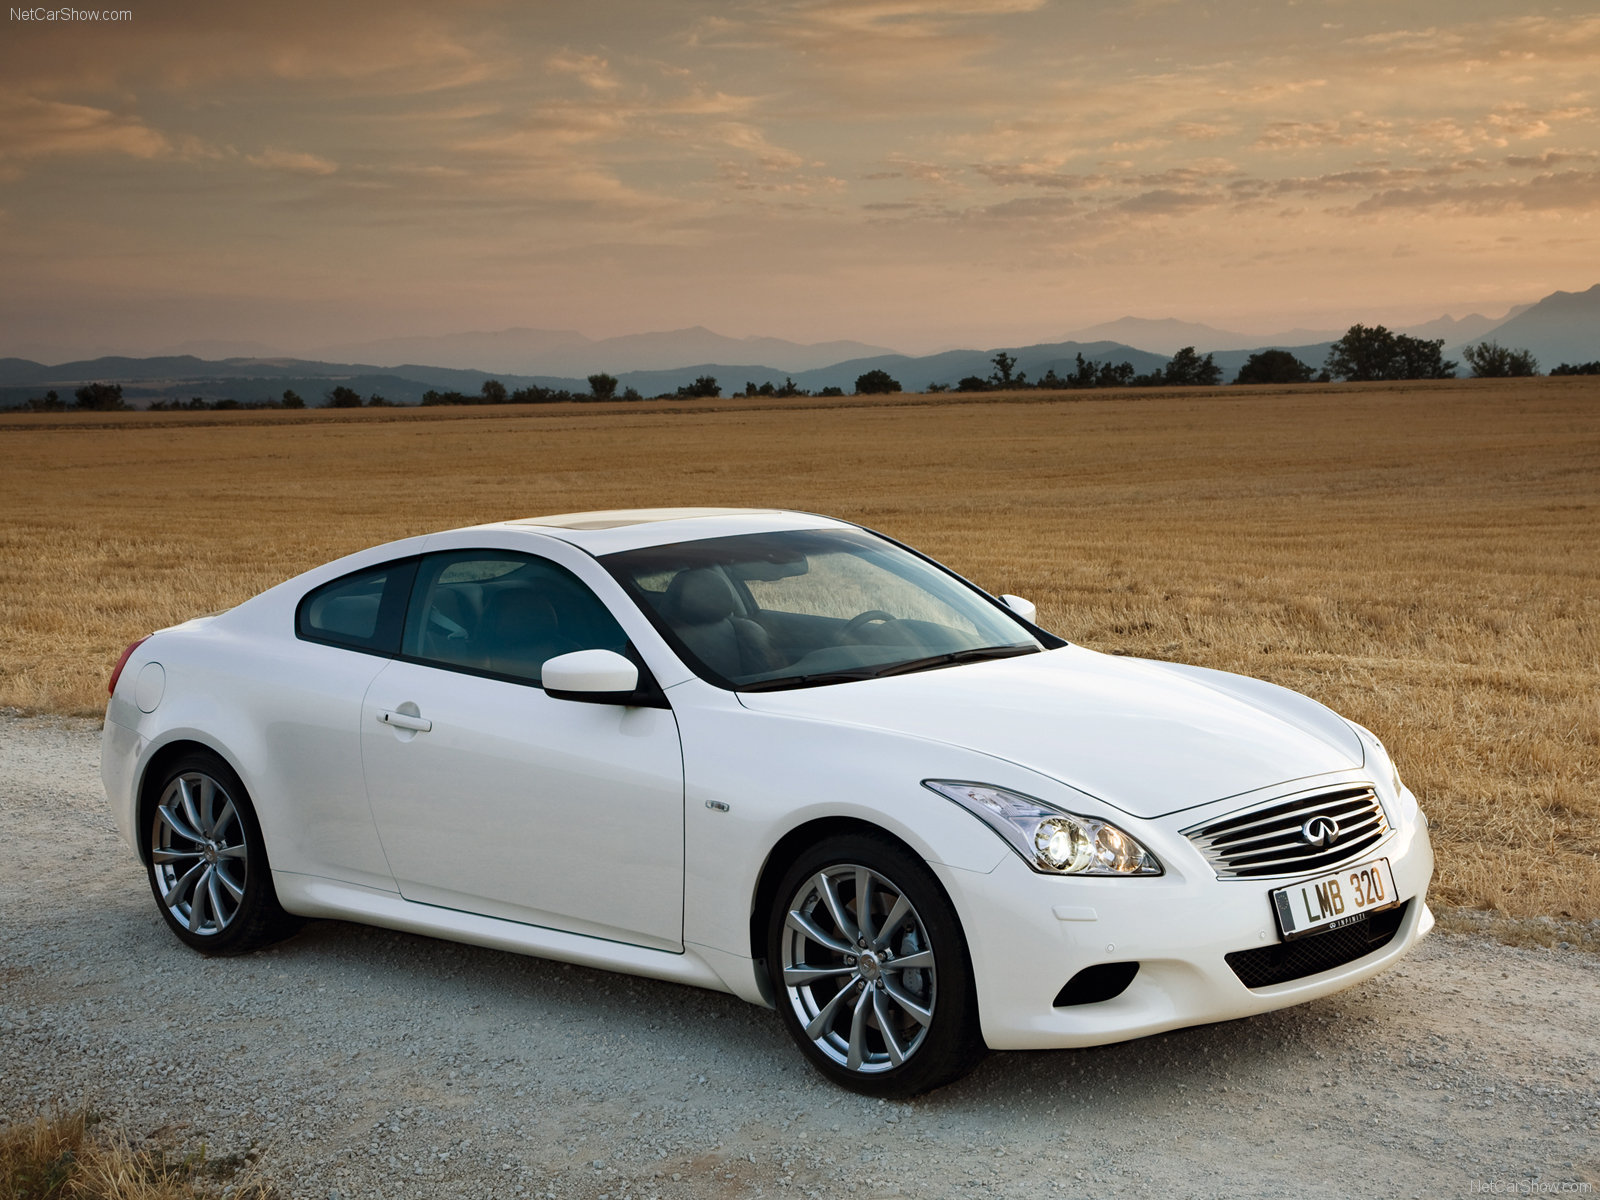 Infiniti G37 Coupe photo 58599